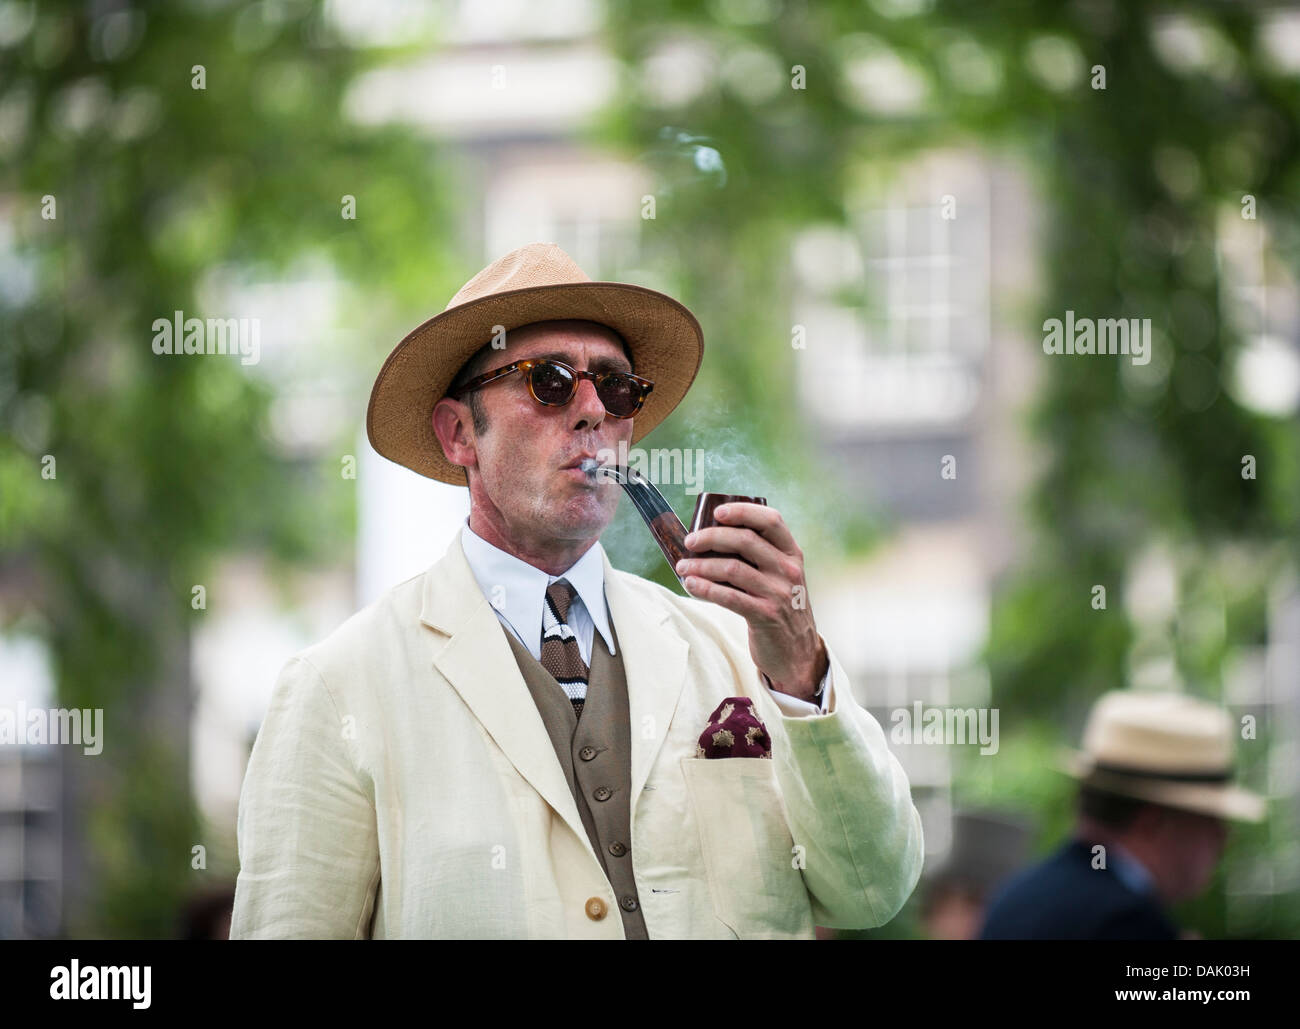 Gustav Temple, editor of the Chap magazine smoking the official pipe at the Chap Olympiad in Bedford Square Gardens. - Stock Image